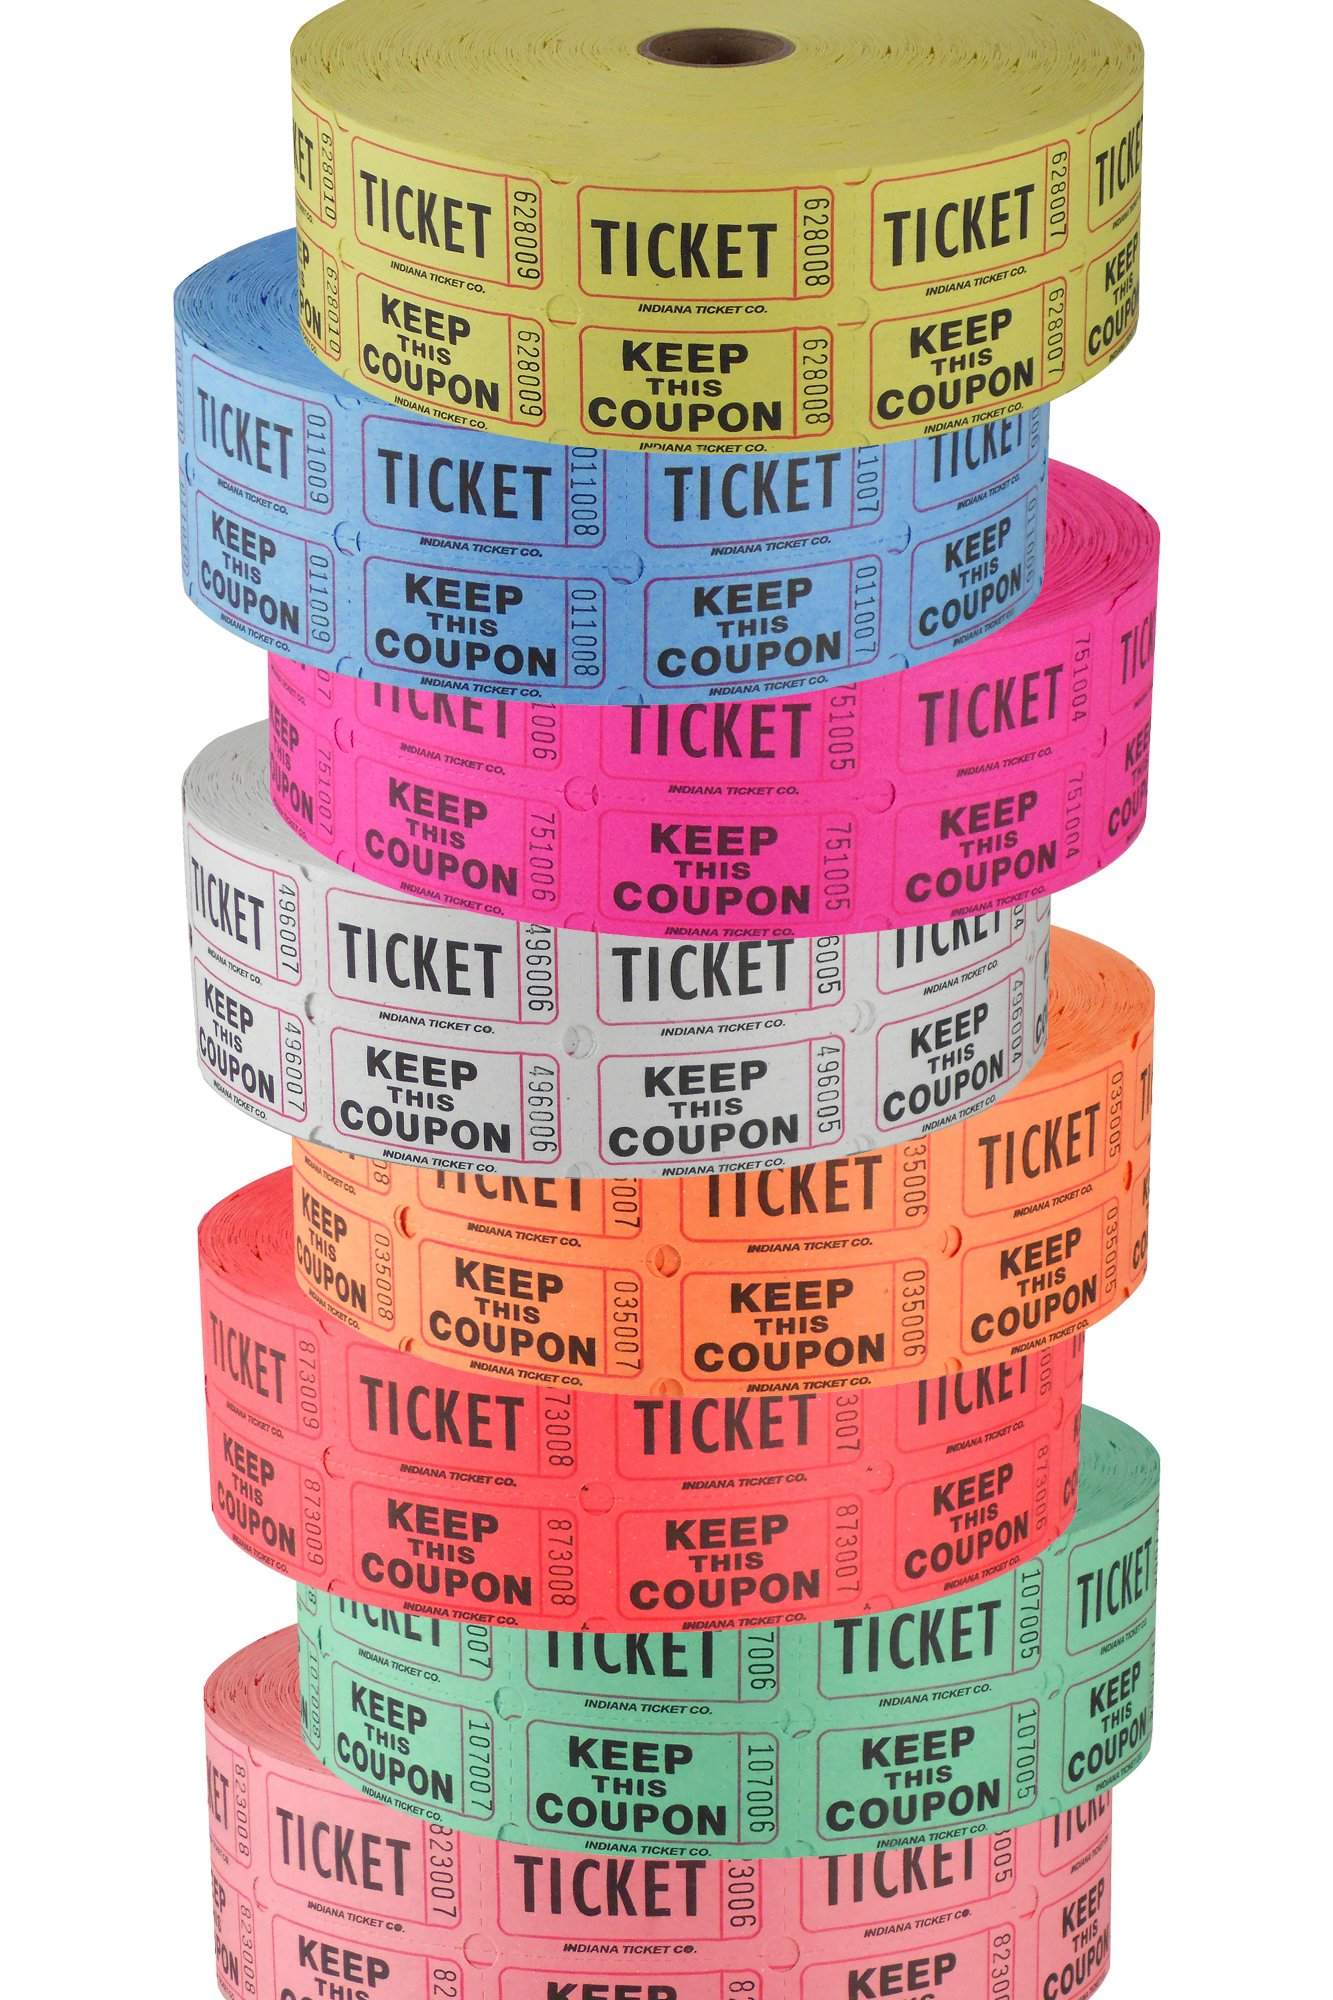 Double Roll Raffle Ticket Tower, '50/50' - Deposit One, Keep One Set of 8 Colors - Includes Designer Deals Custom Raffle Ticket Winners Charts! by INDIANA TICKET CO